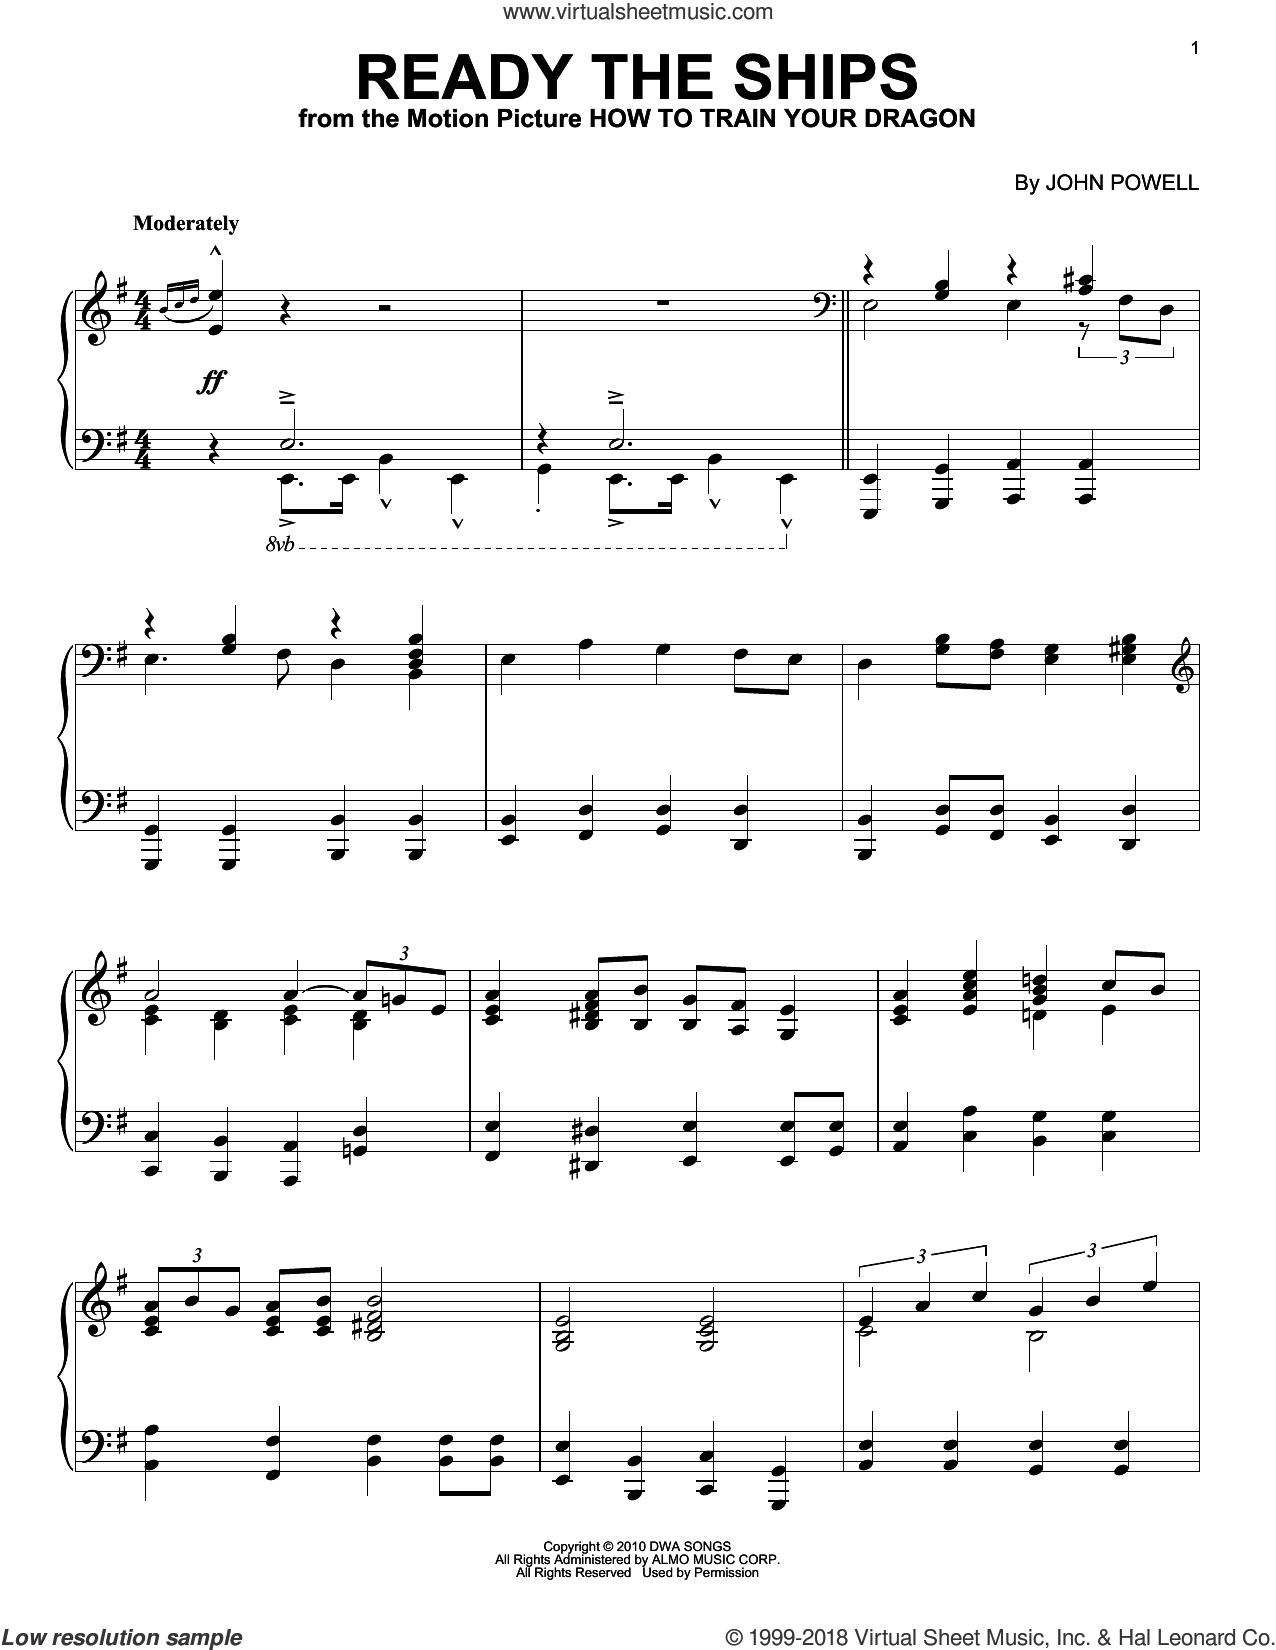 Ready The Ships sheet music for piano solo by John Powell, intermediate skill level